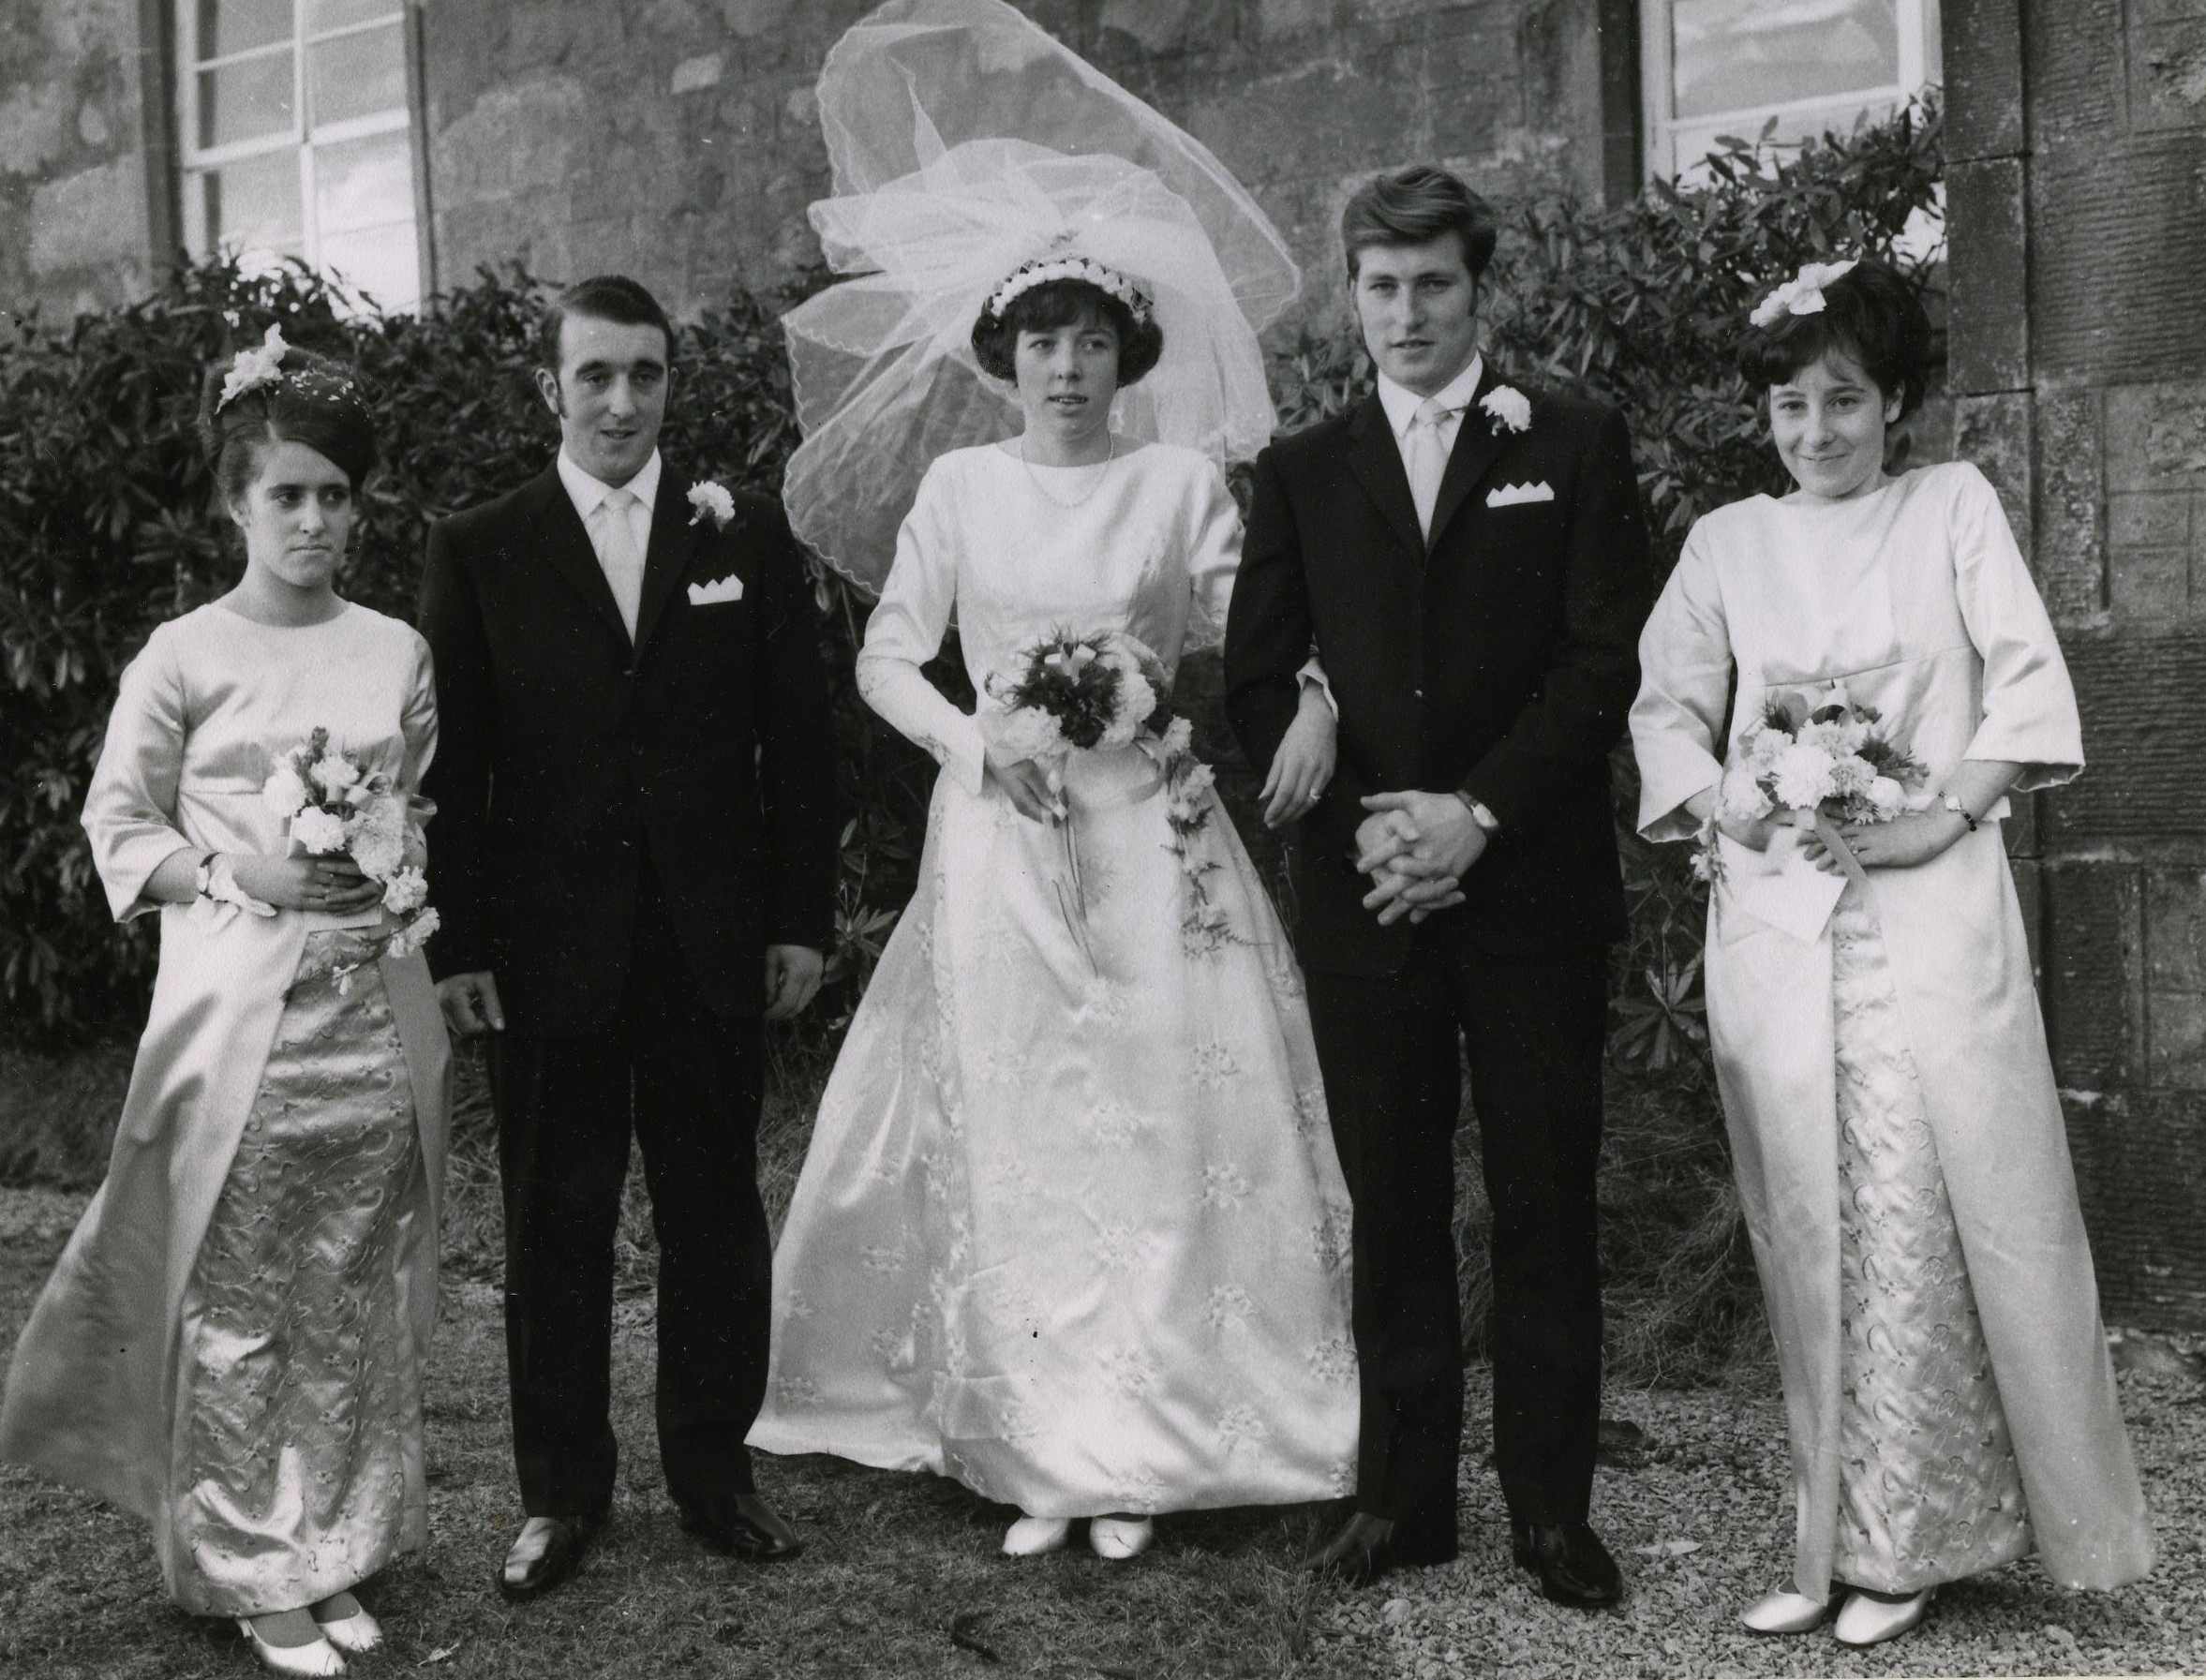 John MacDonald & Sandra Smylie's Wedding